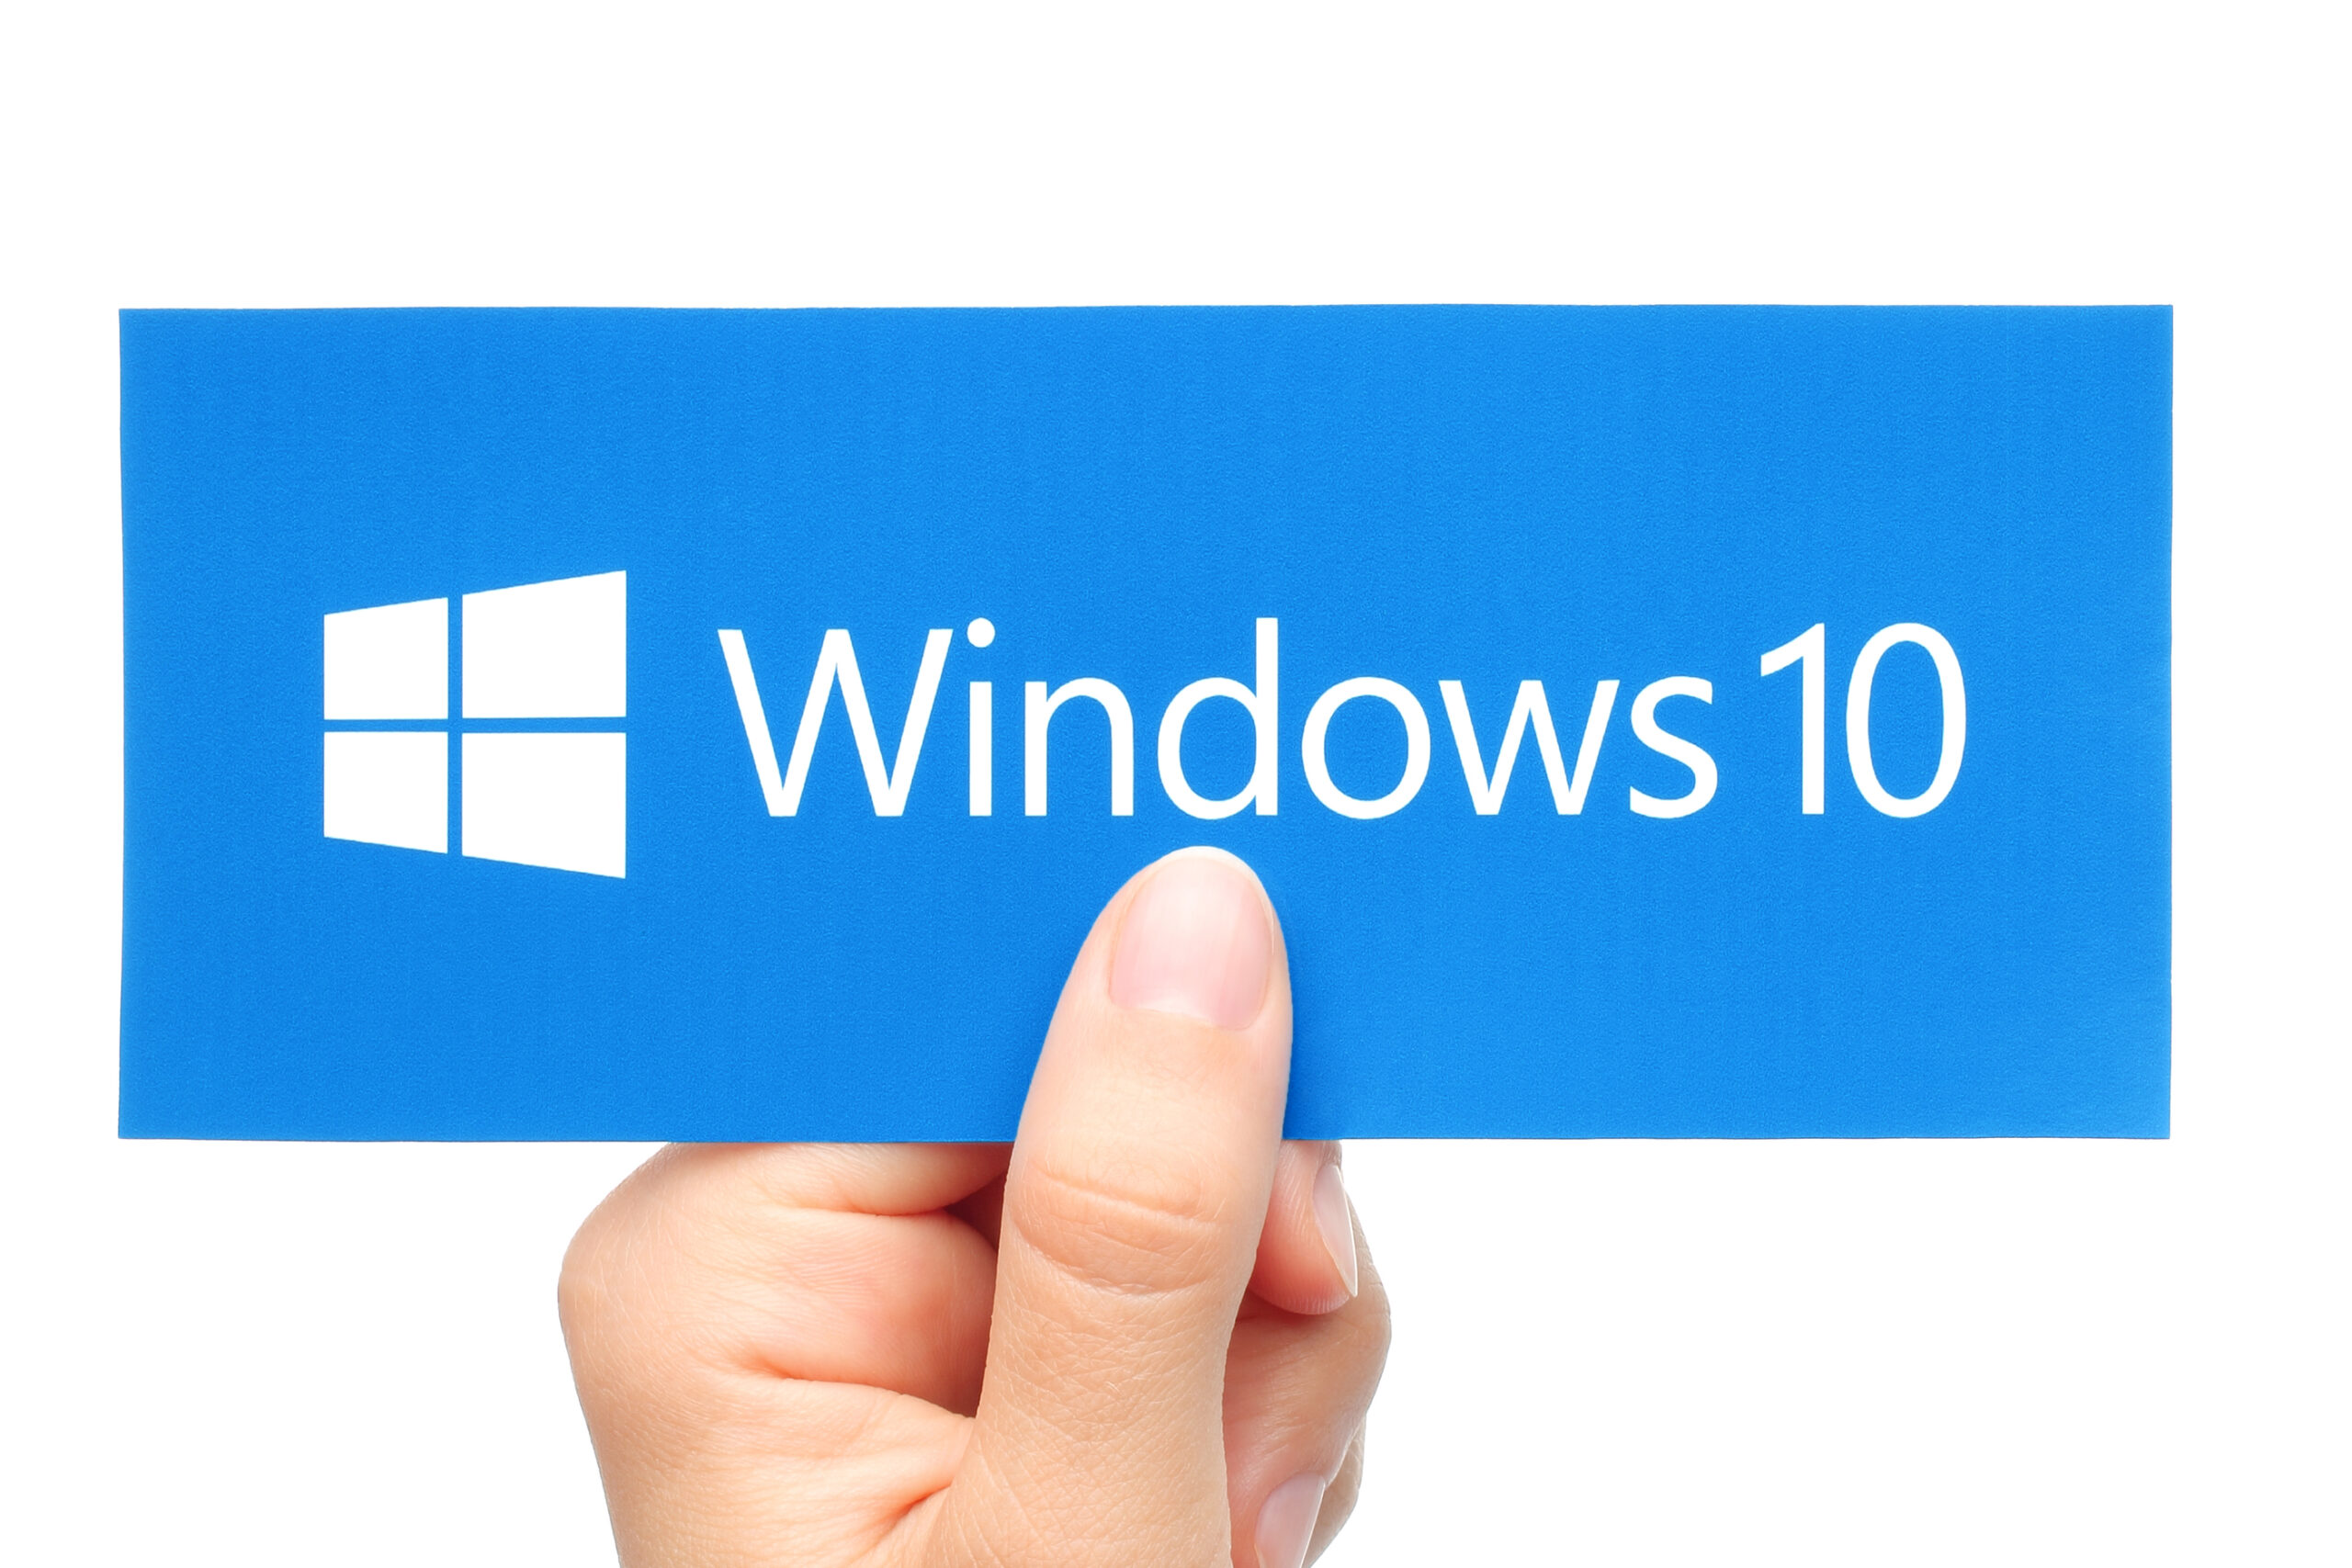 What Can We Expect from the Windows 10 October 2020 Update?